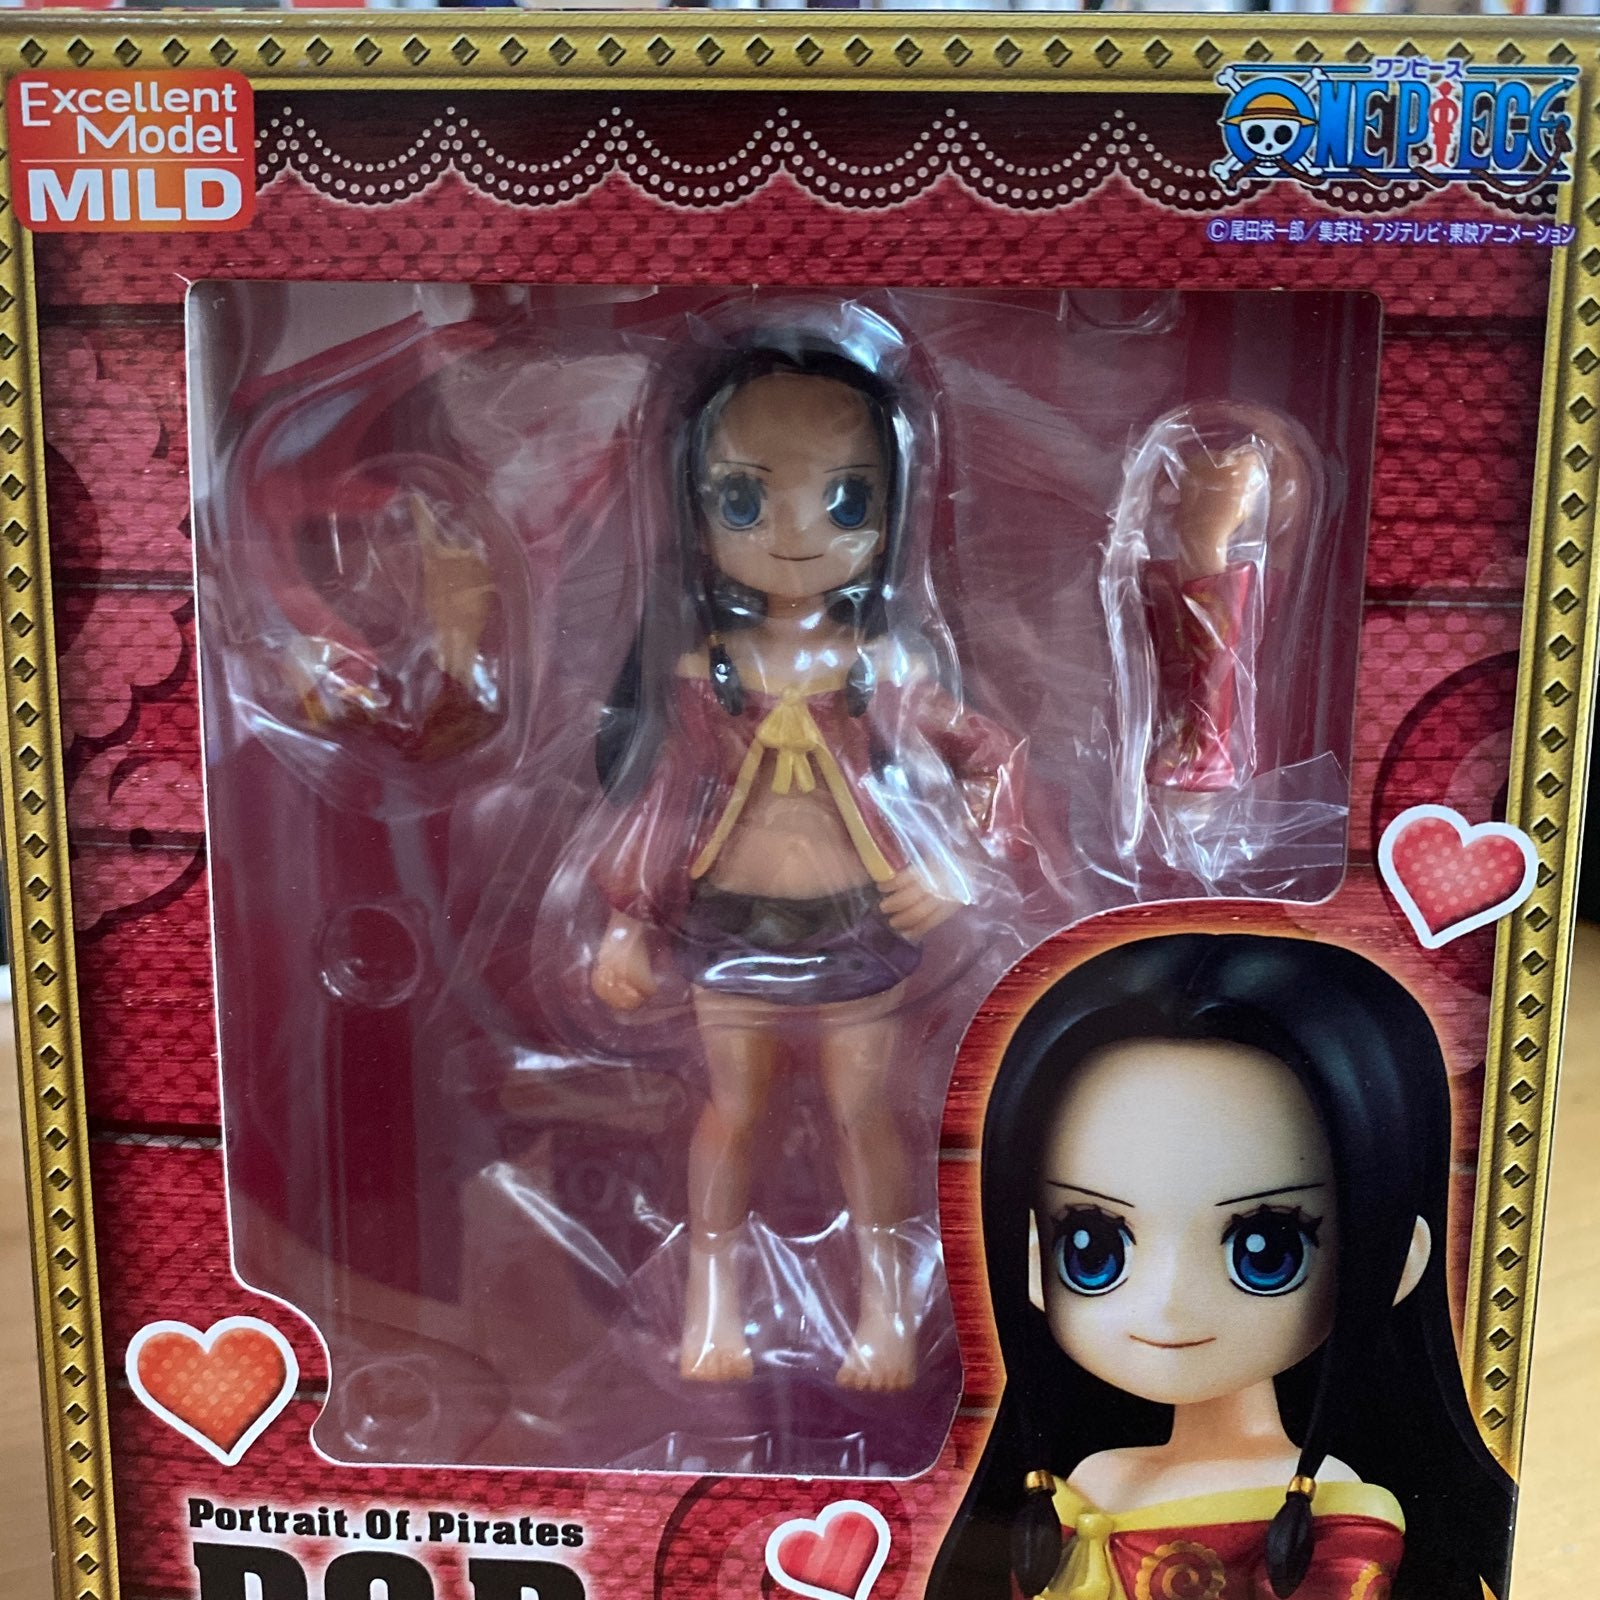 One Piece P.O.P. Boa Hancock Figure